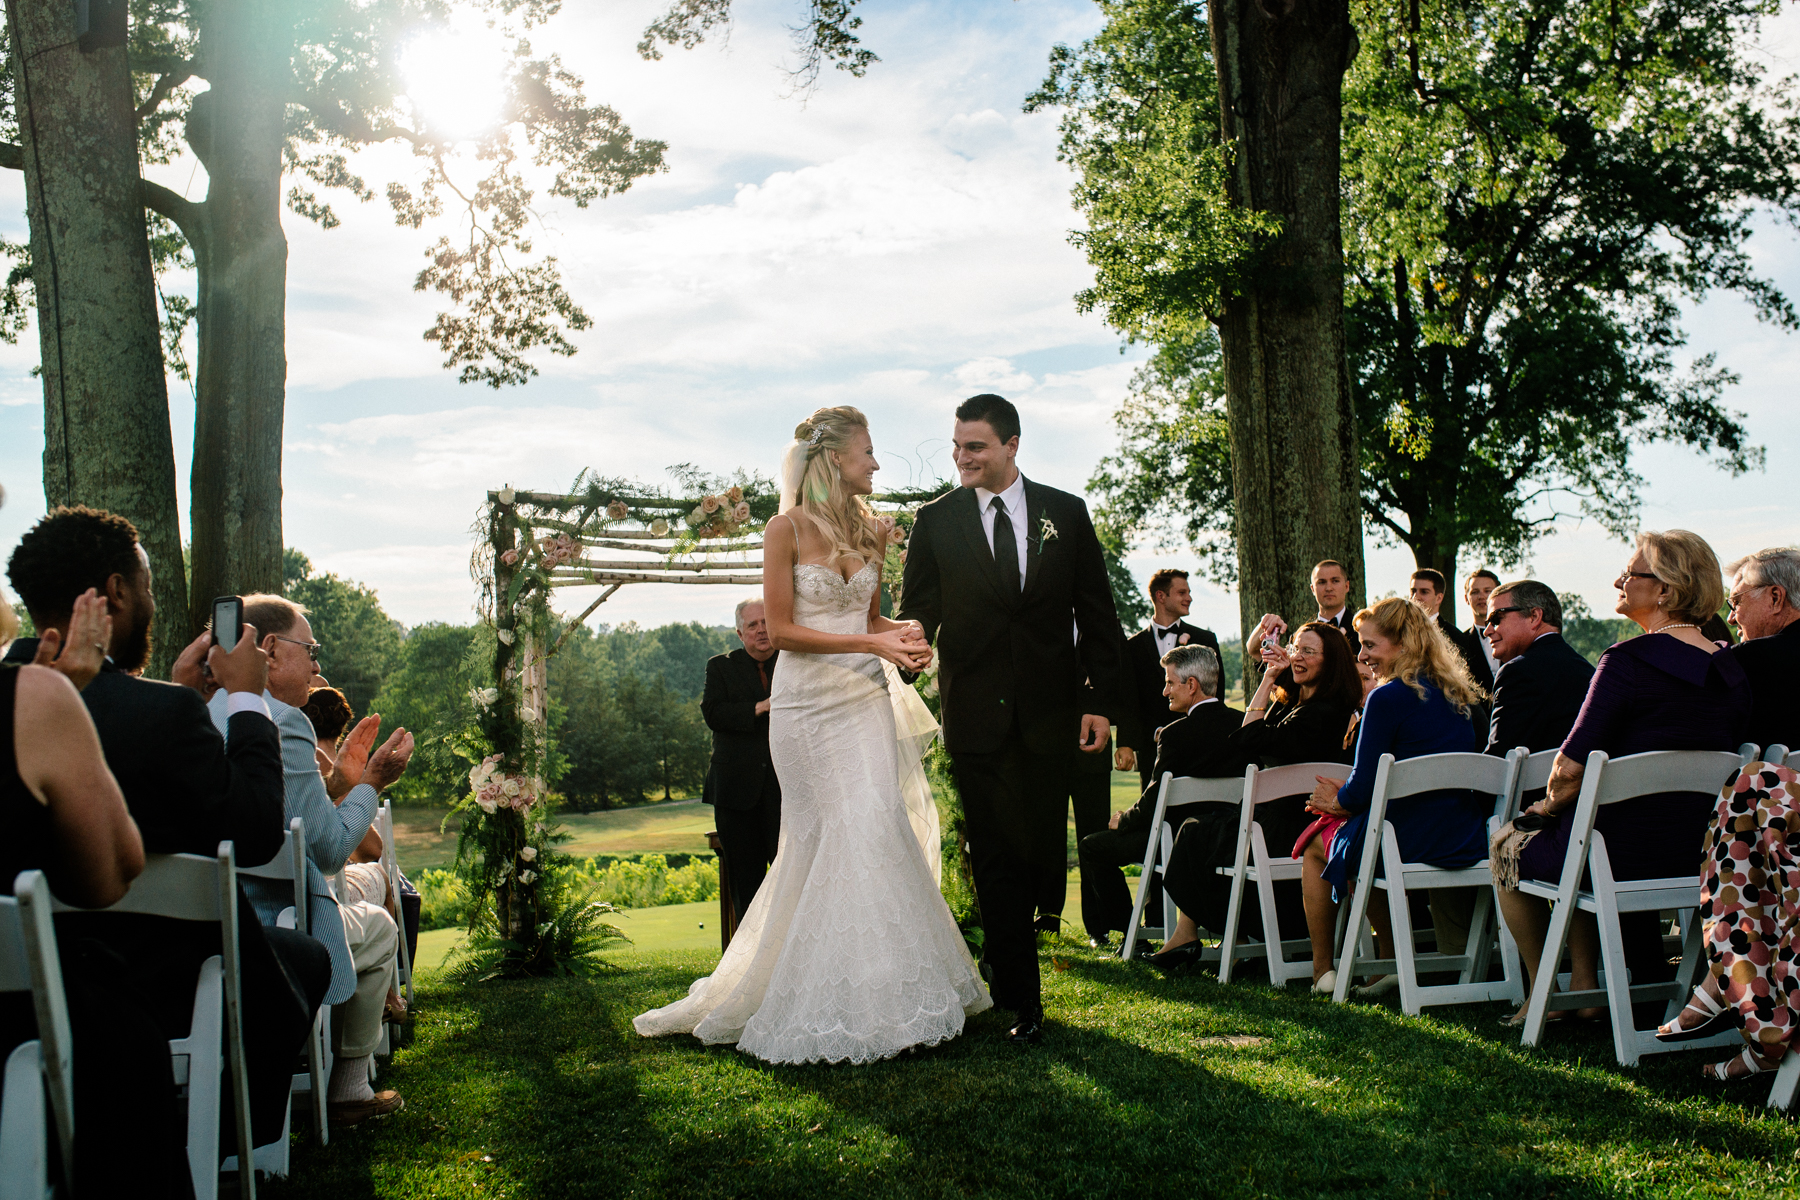 Wedding ceremony Fiddler's Elbow Country Club - Stephen Tang Photo